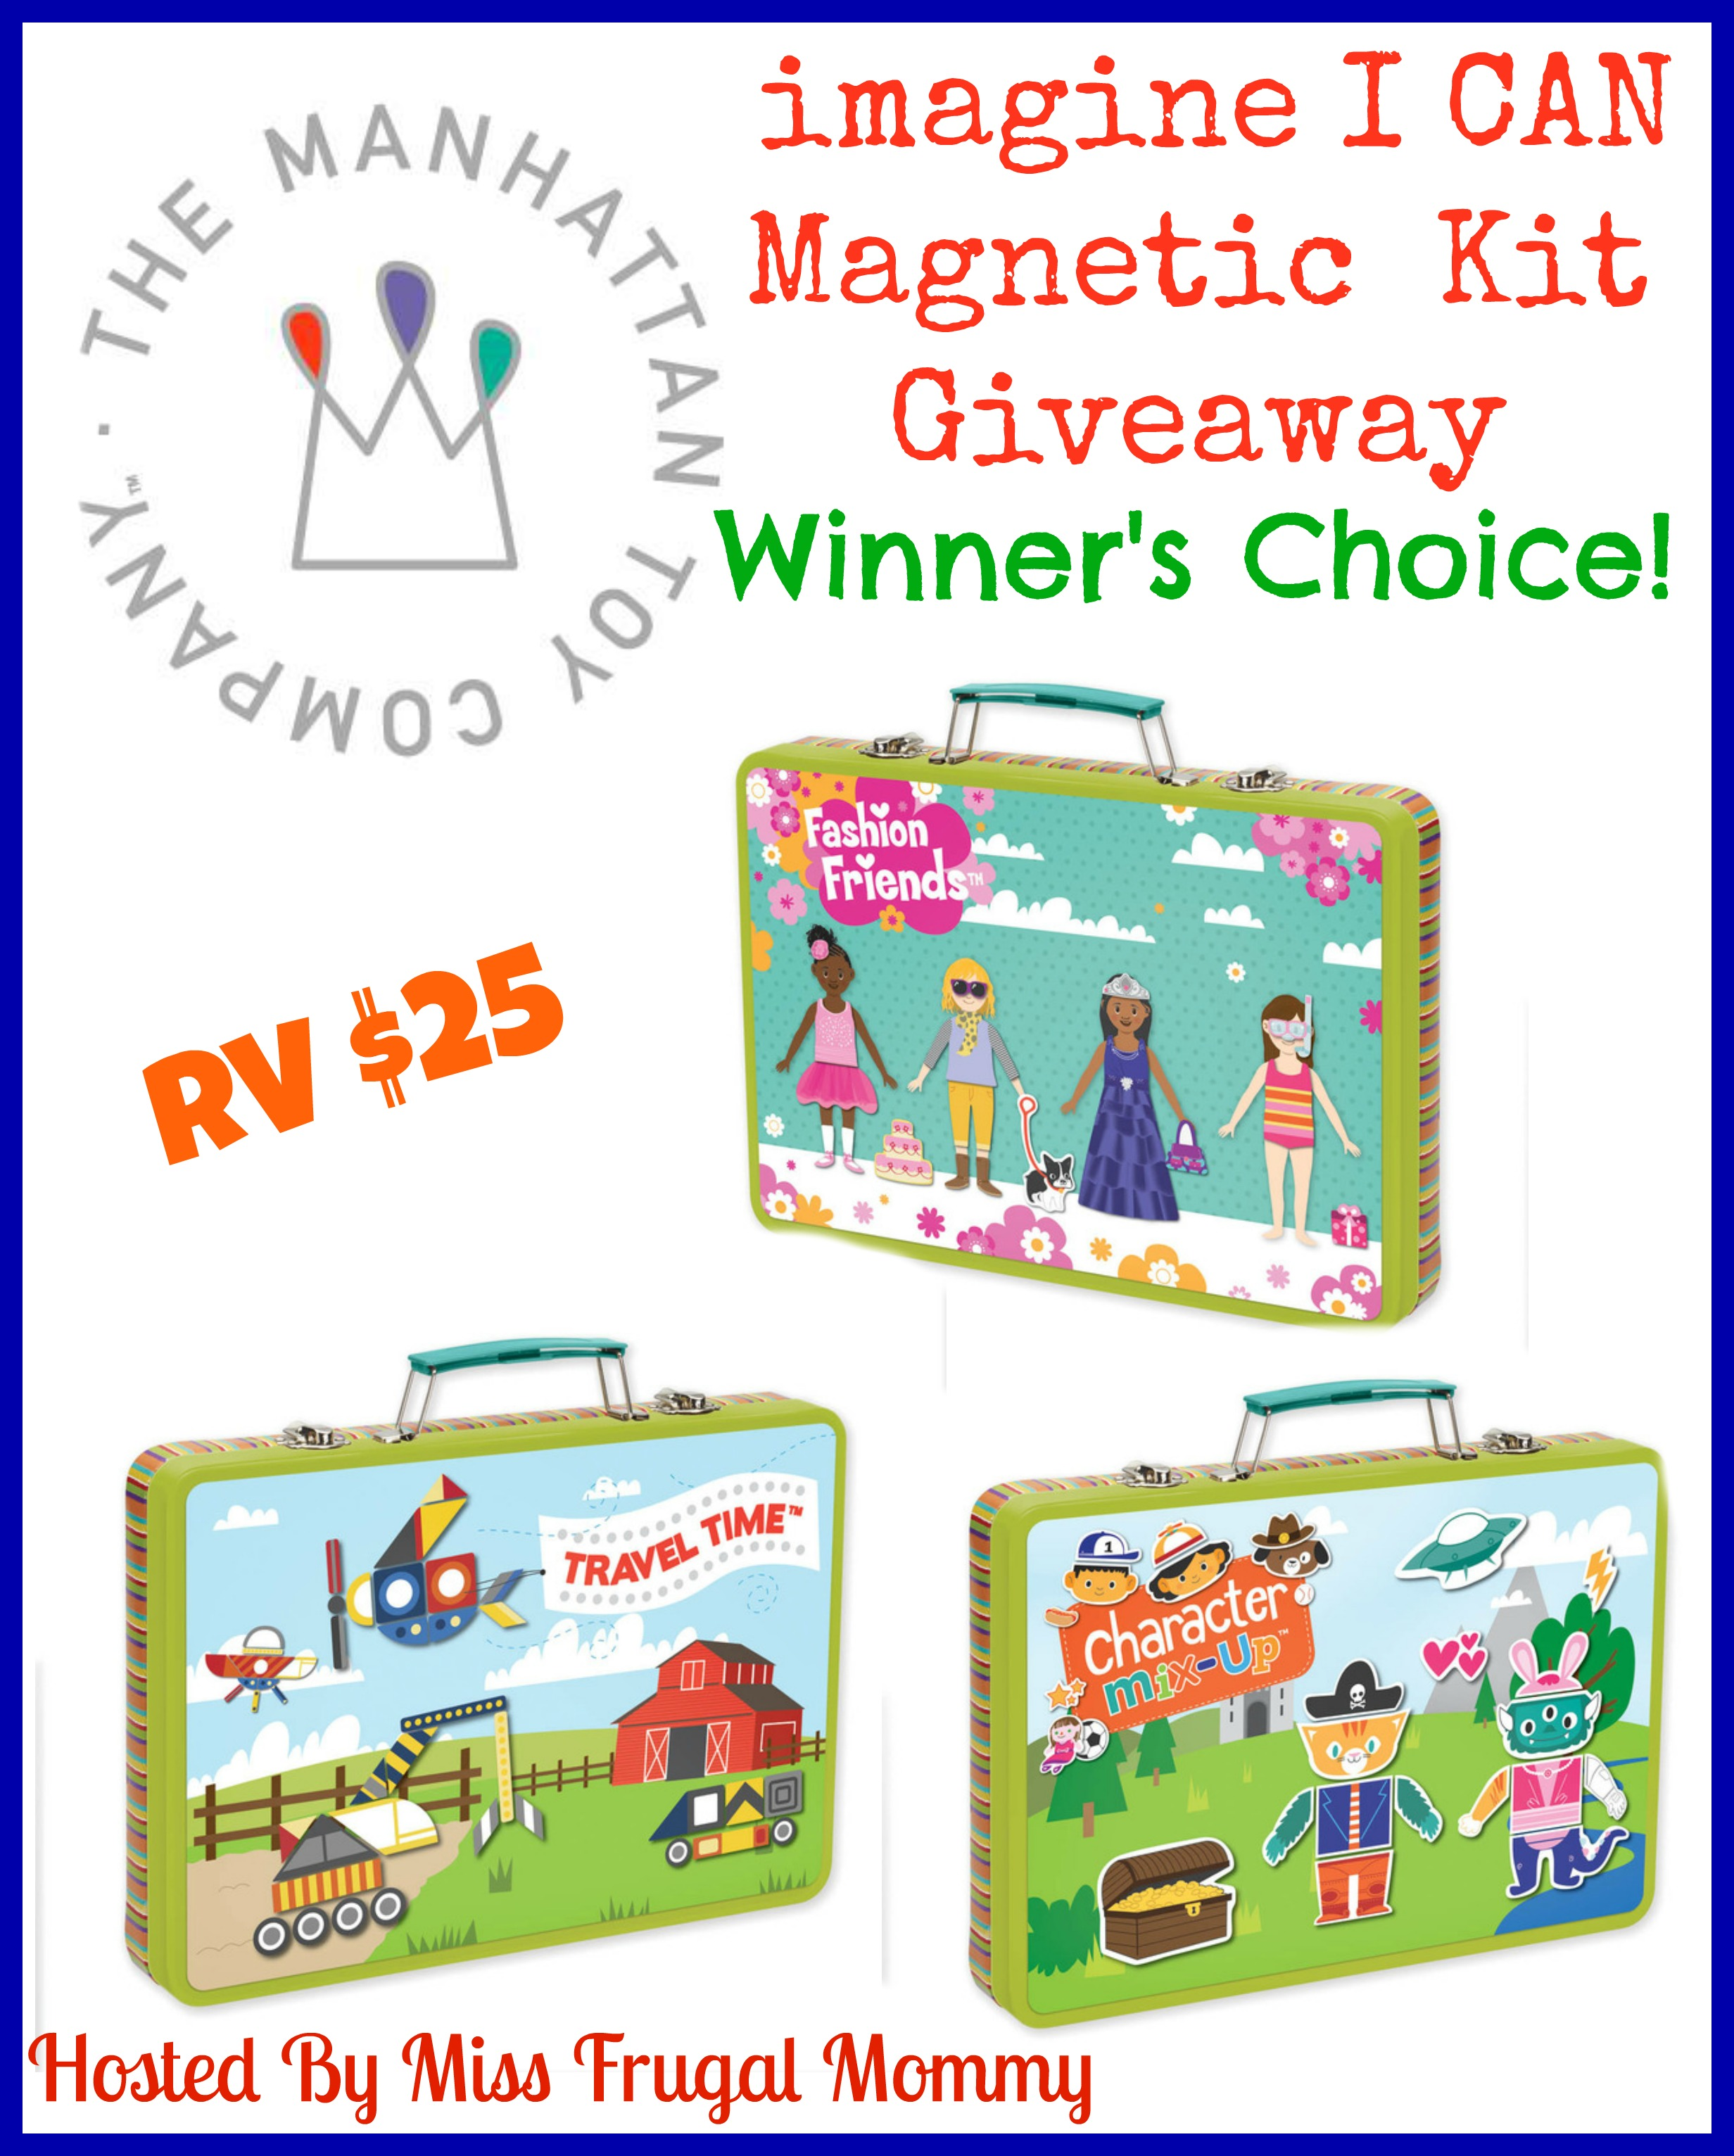 Enter the I CAN Magnetic Kit Giveaway. Ends 5/14